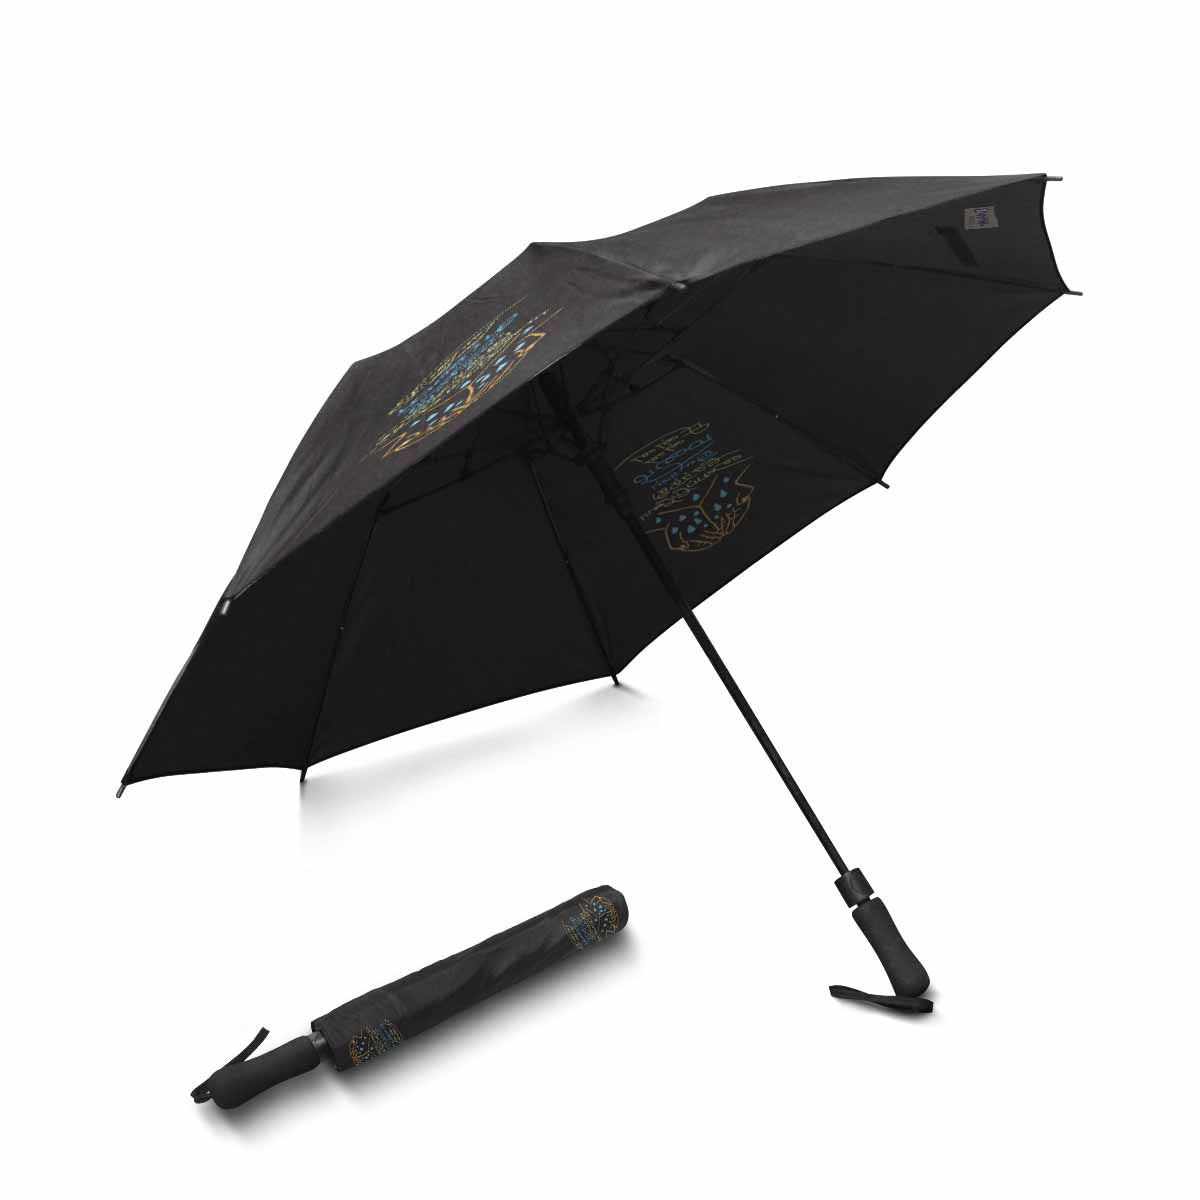 "Chinna Chinna Mazhaithuligal Serthuvaipaeno 42"" Semi-Automatic Foldable Umbrella"